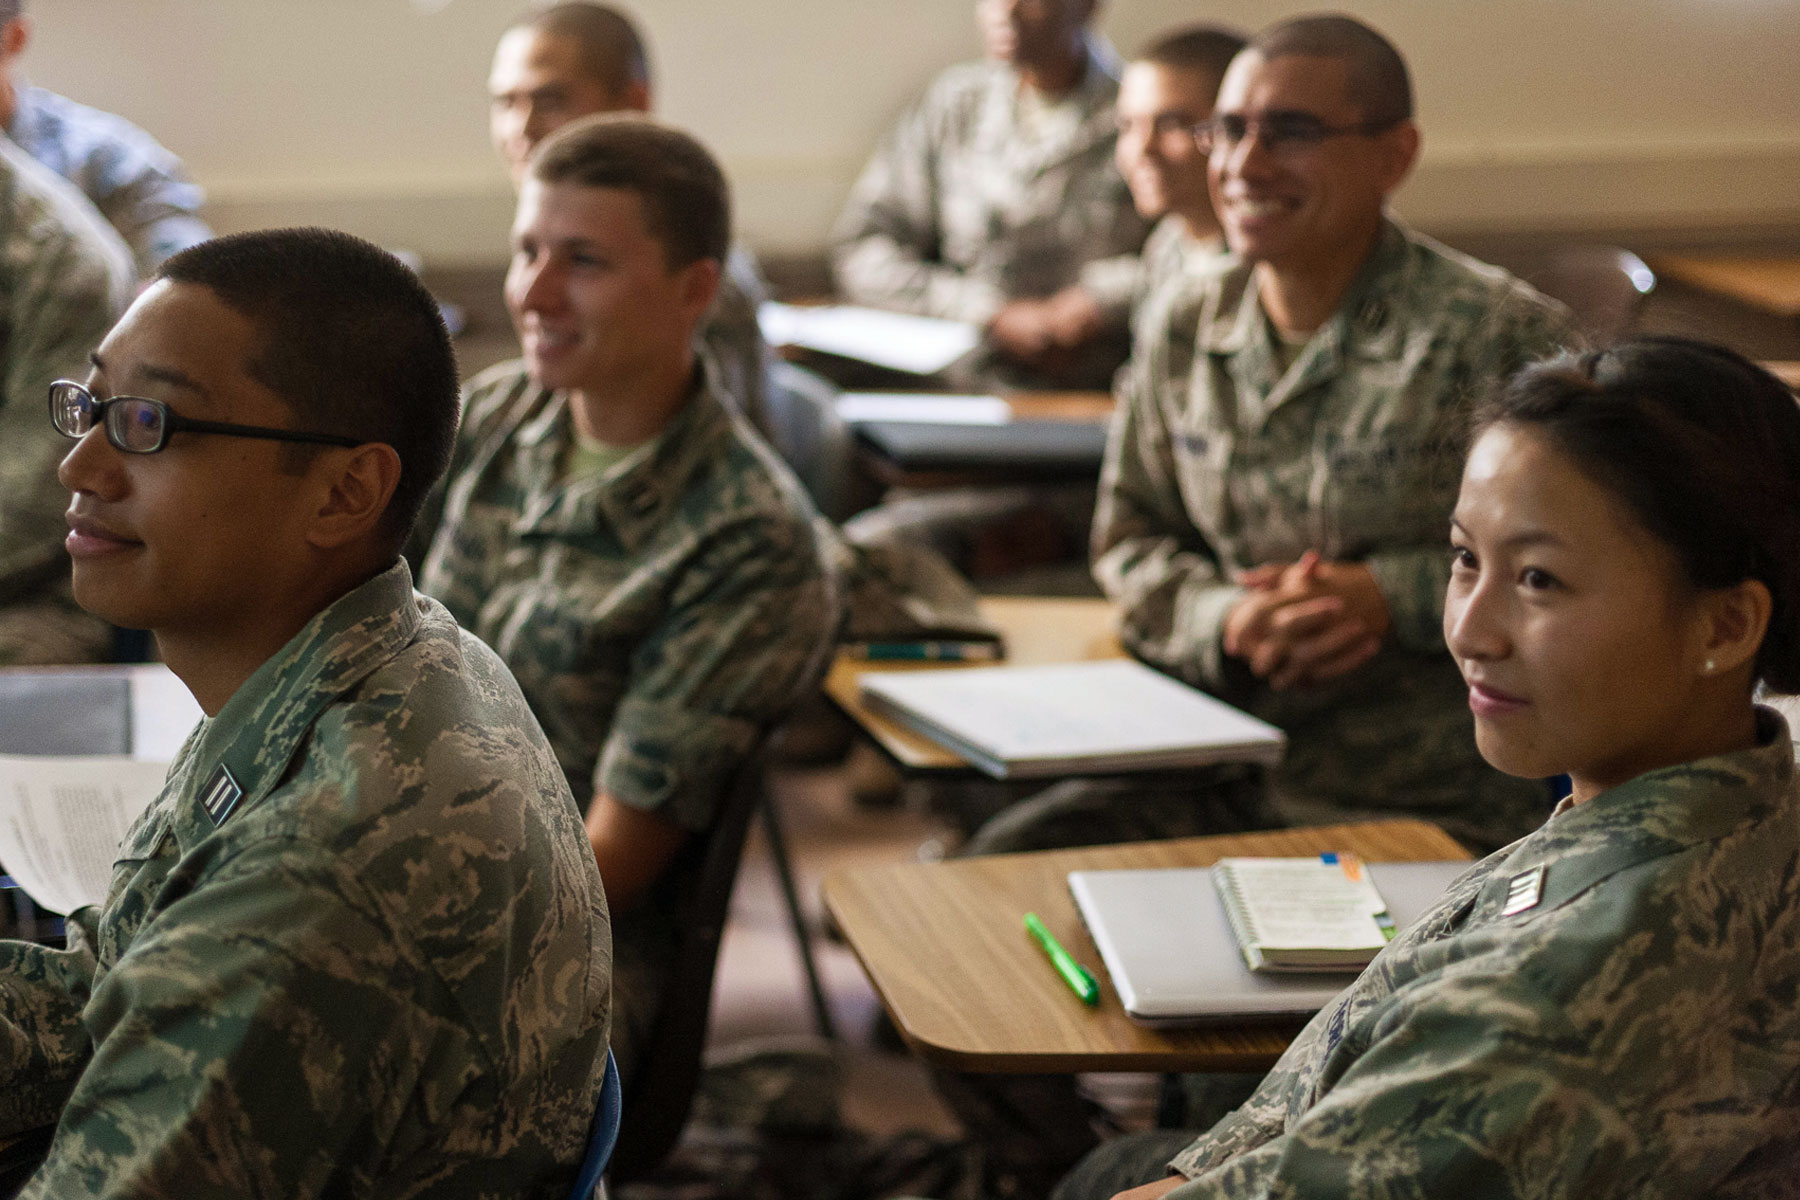 Military and Veteran students in the classroom.